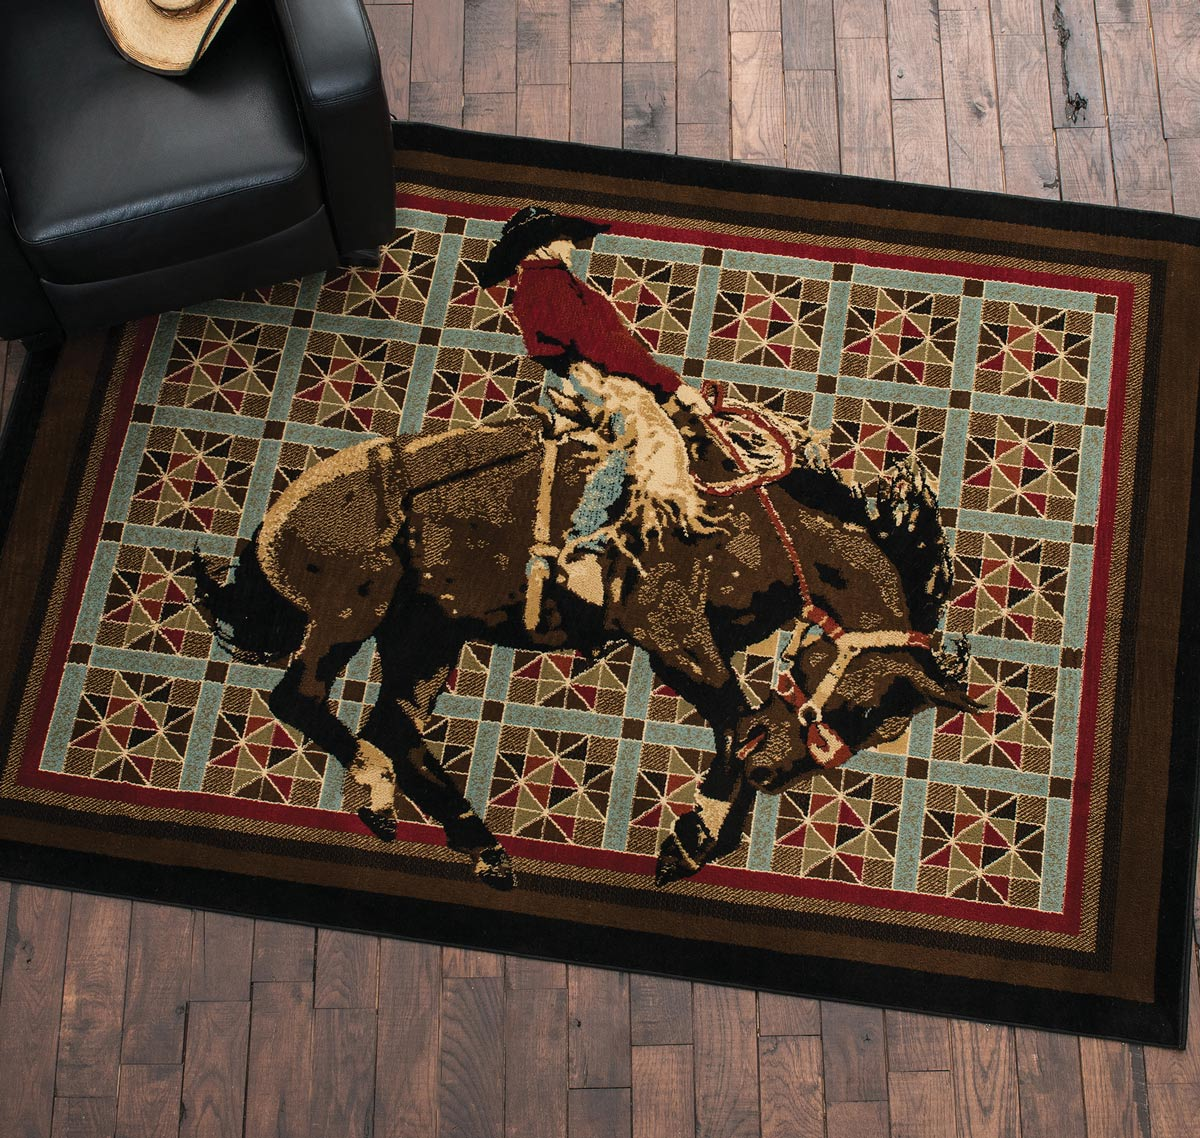 Rodeo Star Quilt Rug - 5 x 7